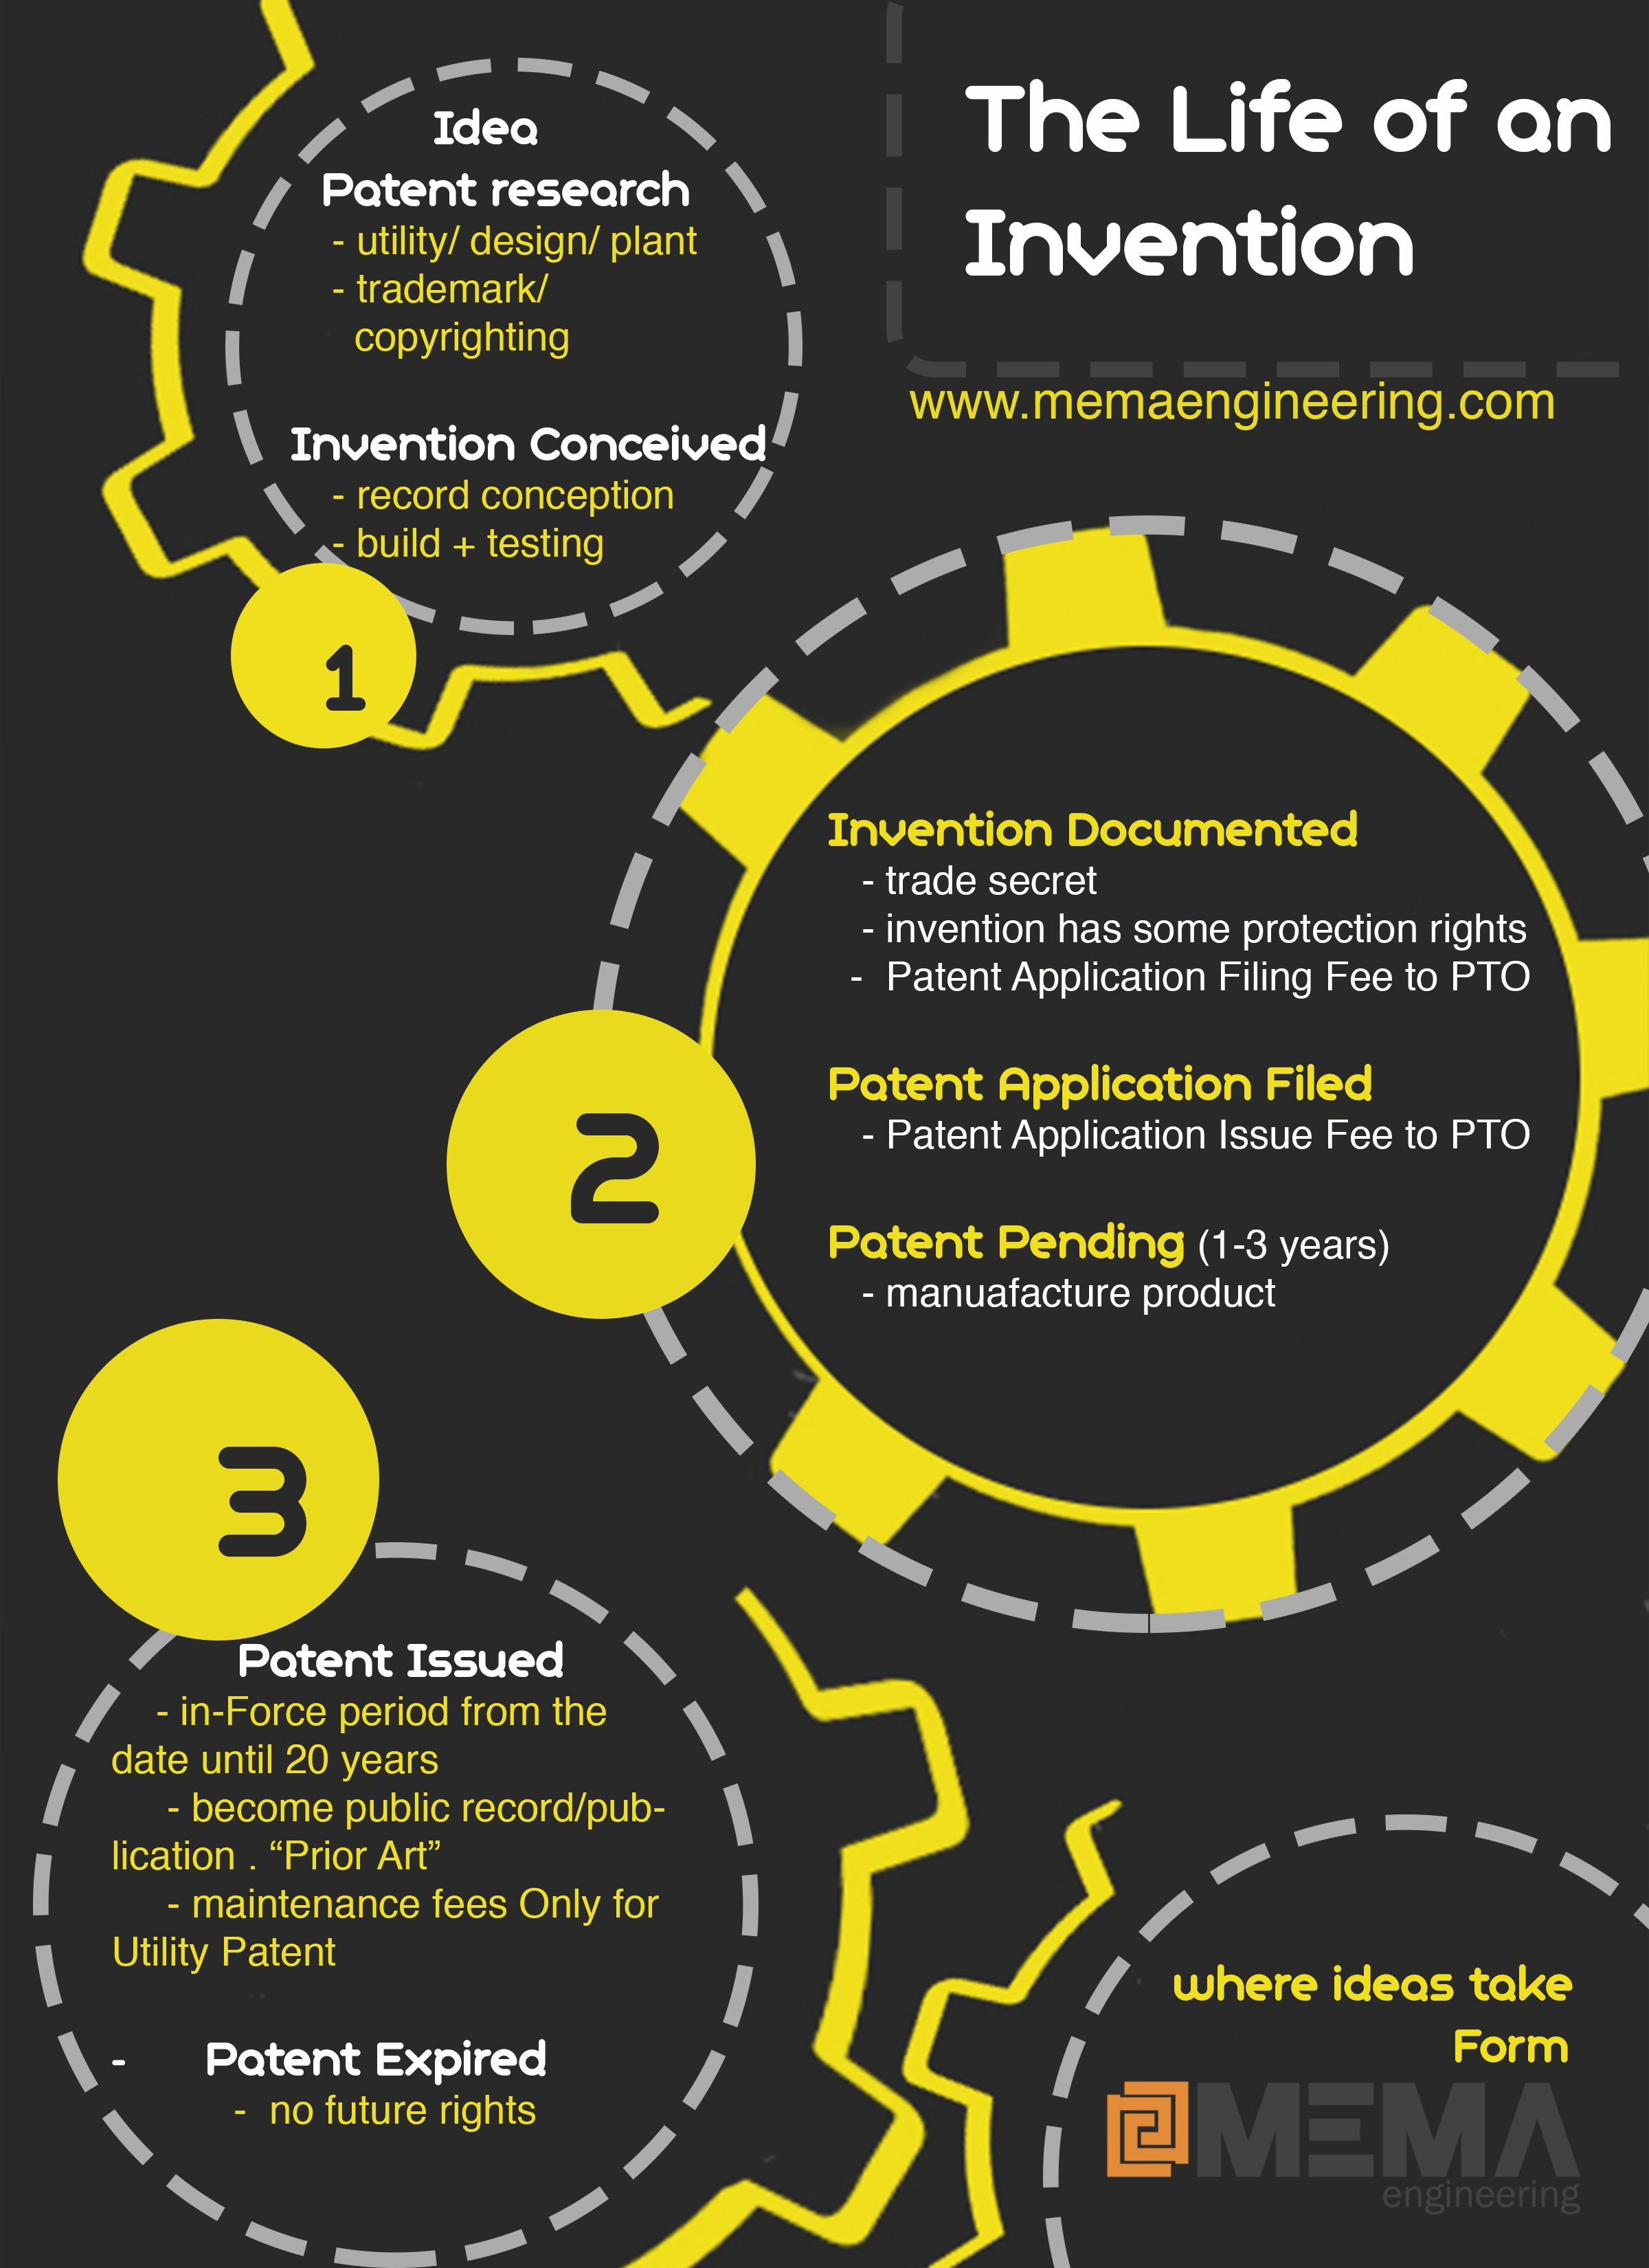 Mema Engineering Shares Cool Poster About Patent And Invention Path For Your Idea Engineering Poster Marketing Advice Inventions